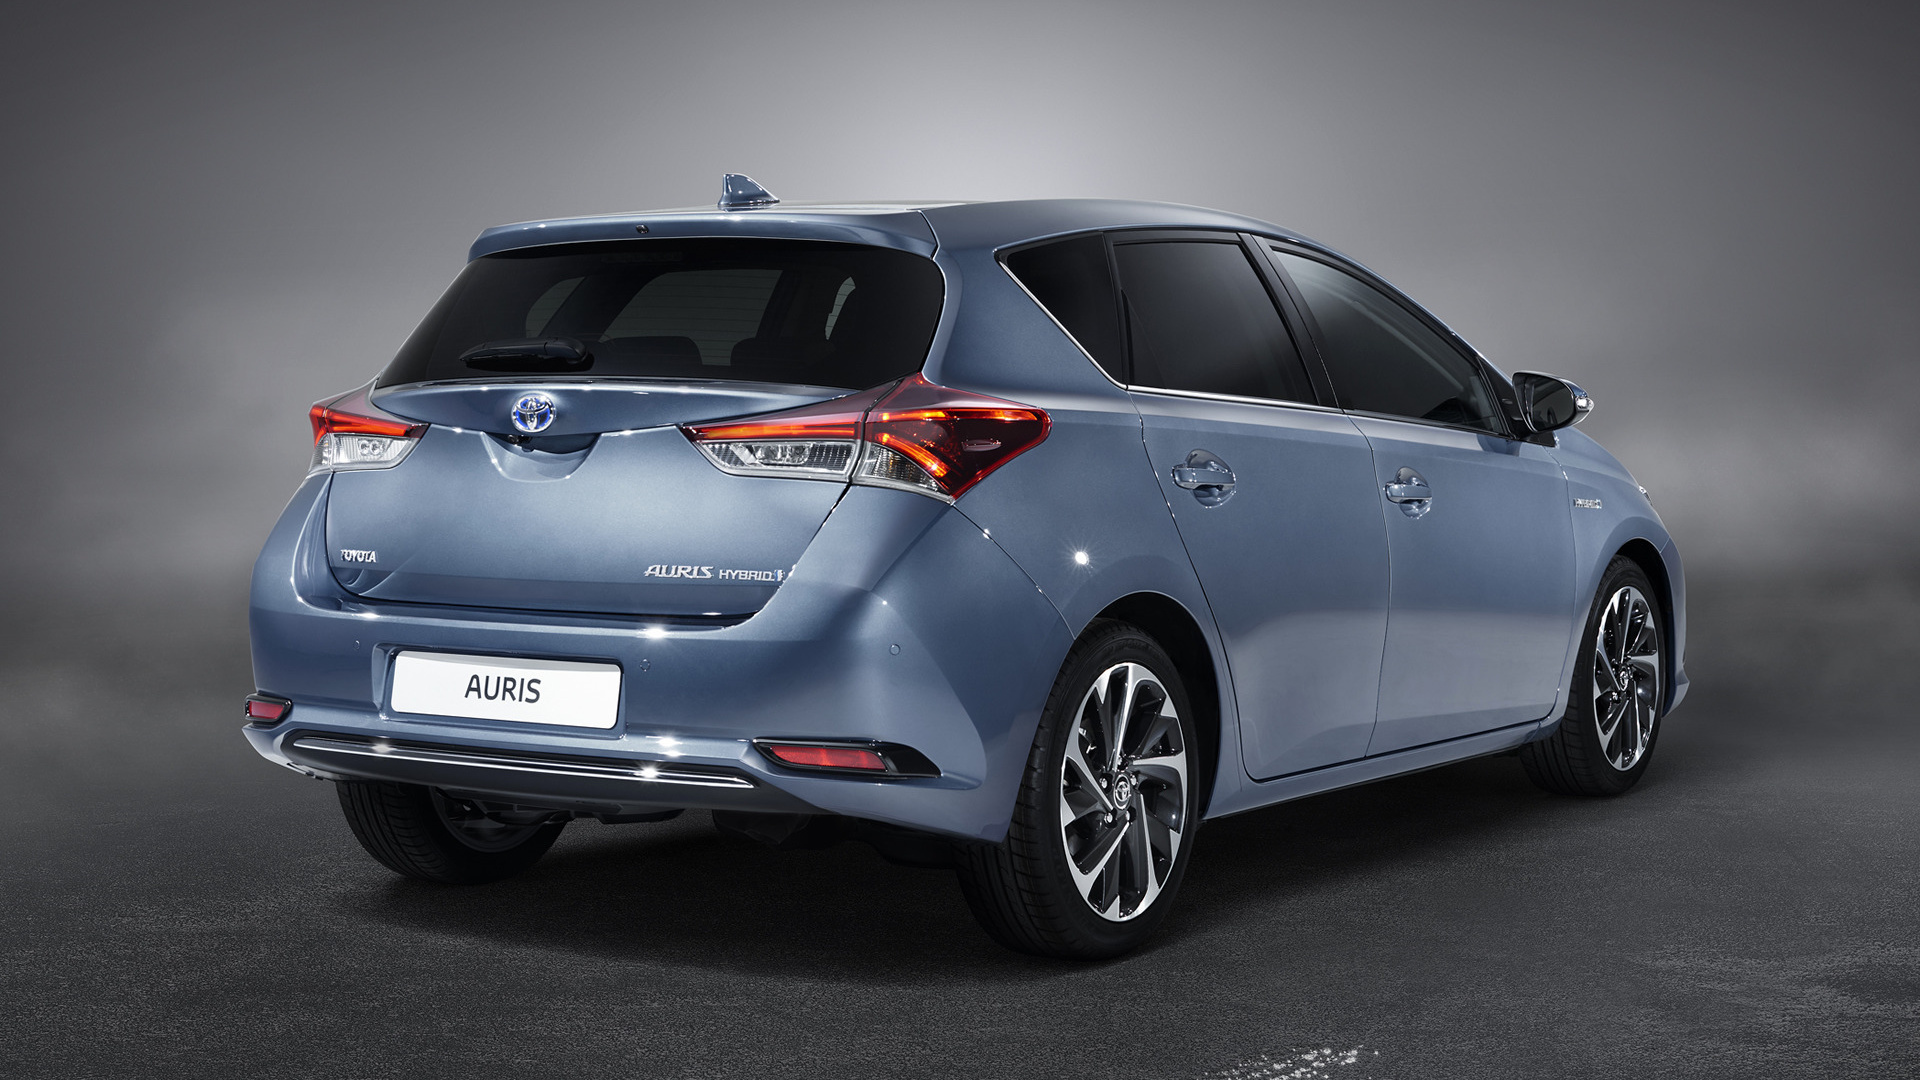 2015 toyota auris hybrid wallpapers and hd images car pixel. Black Bedroom Furniture Sets. Home Design Ideas